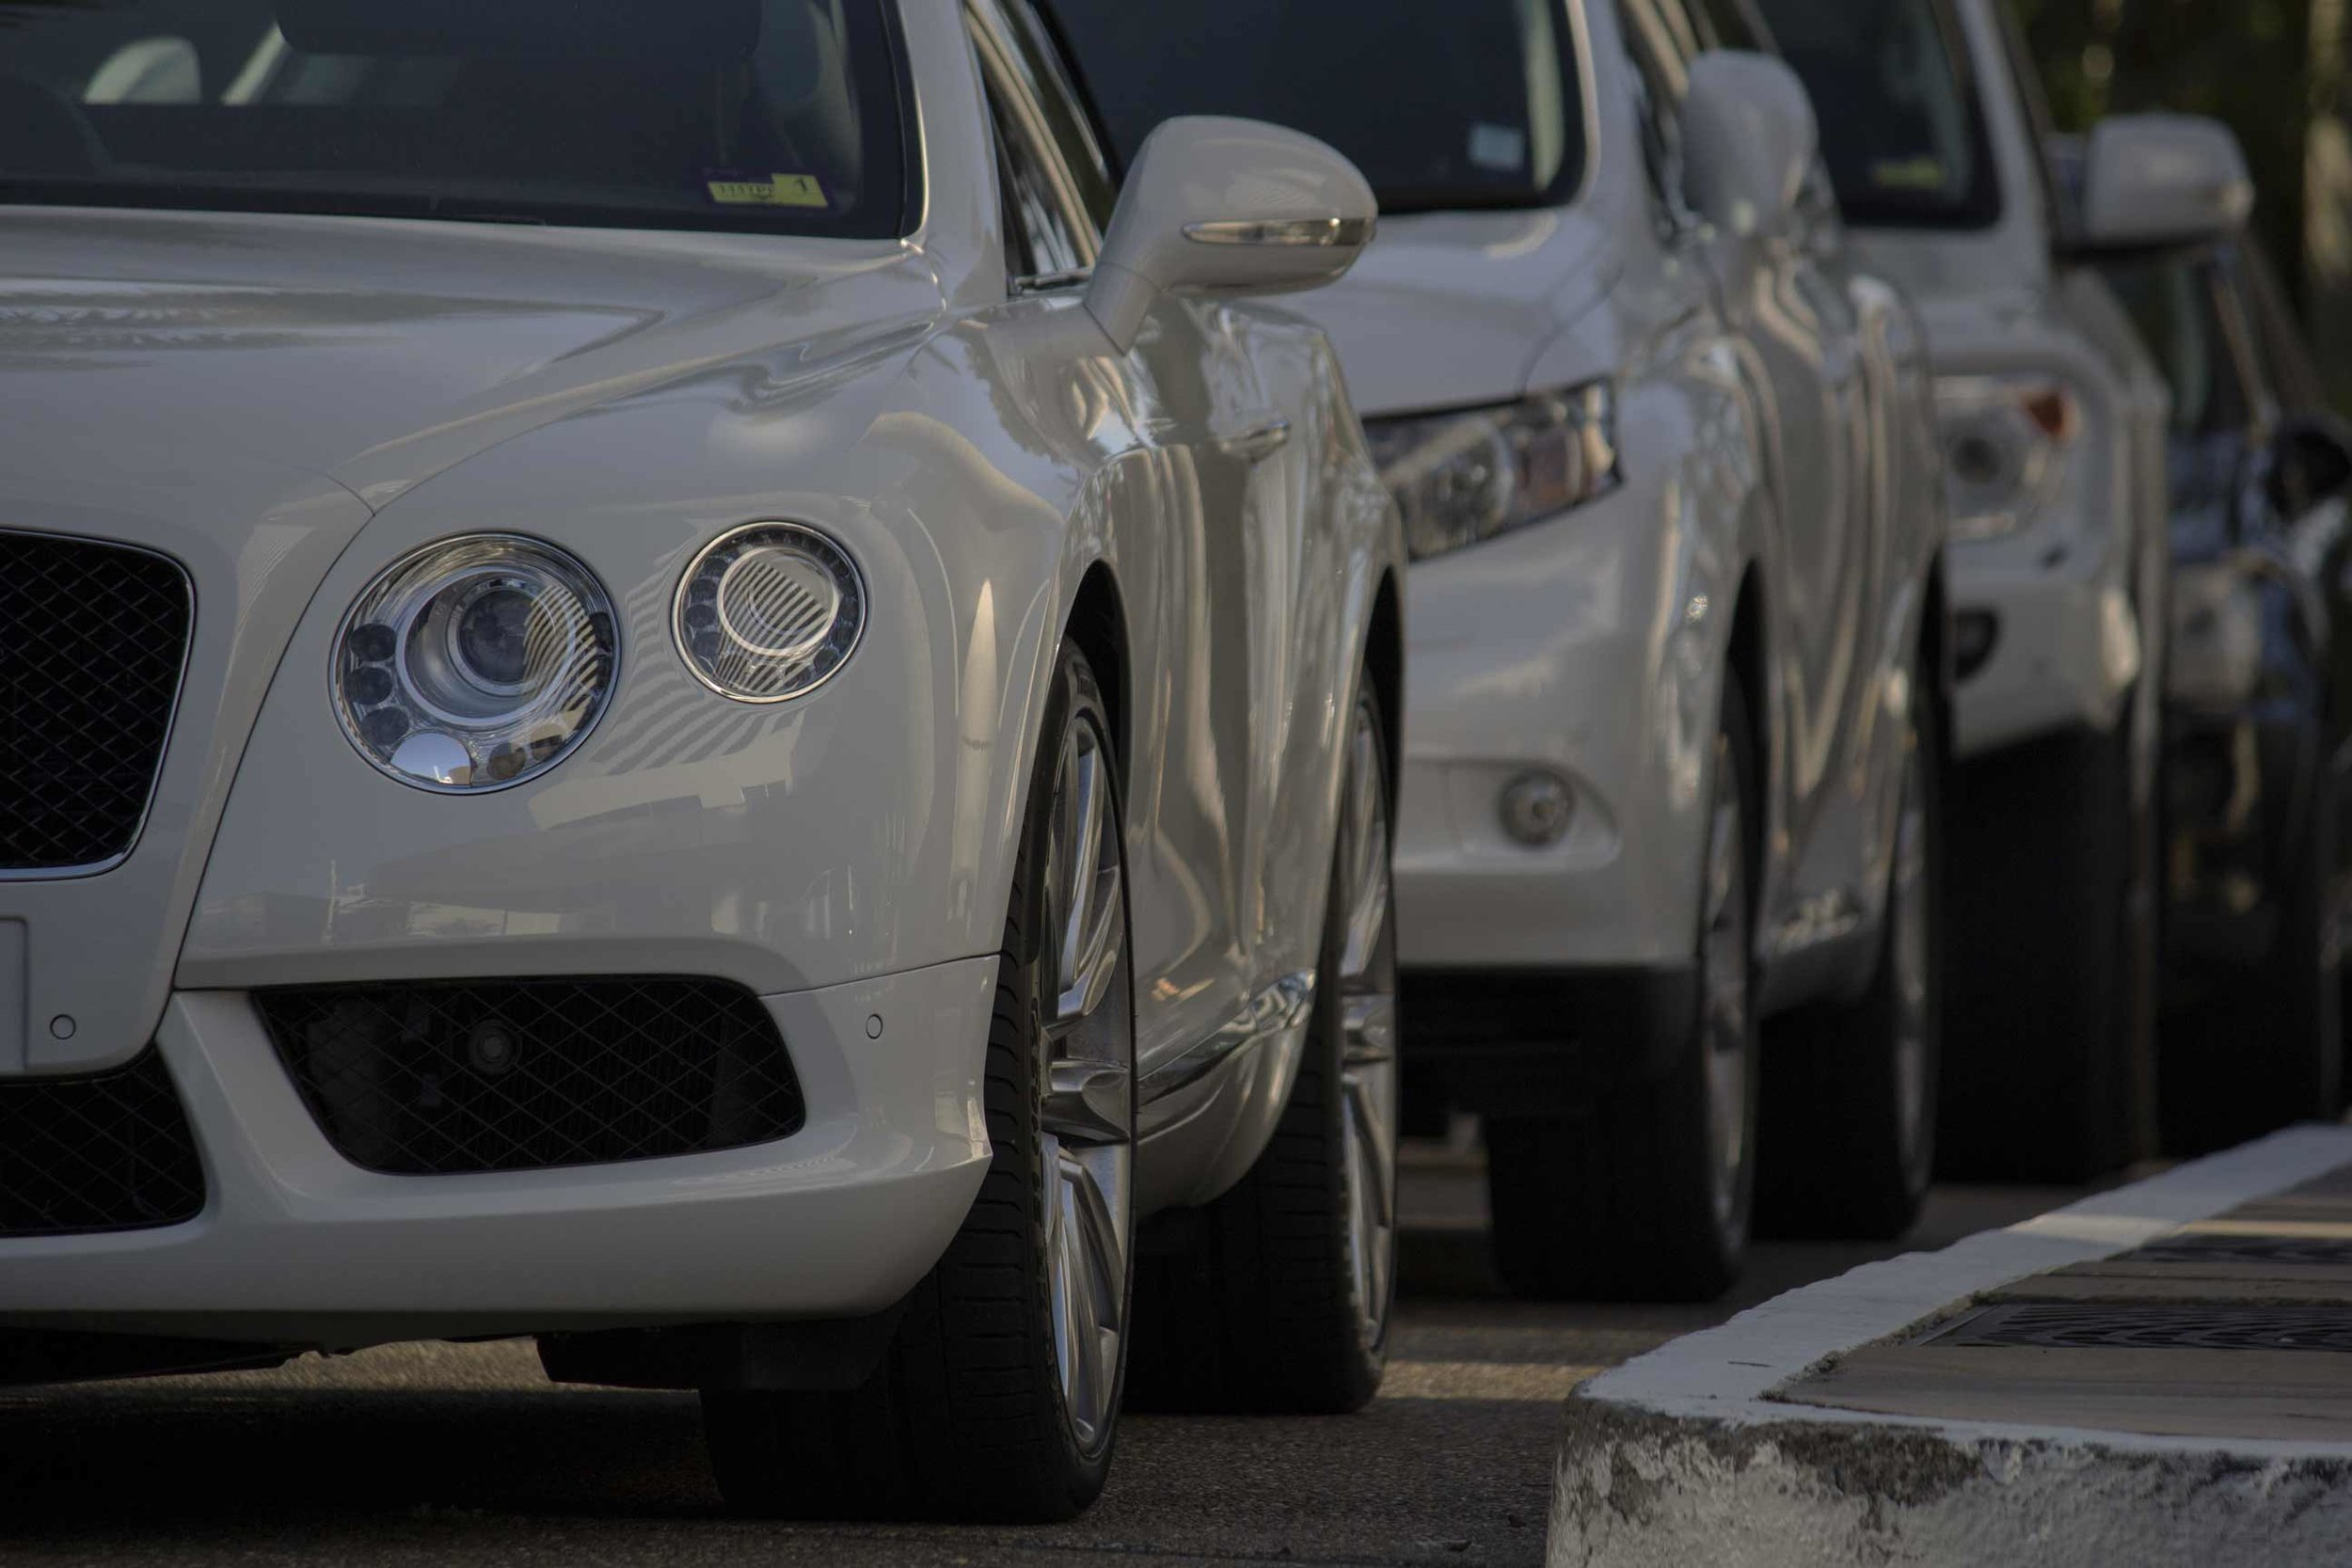 lumpur continental kuala car s my oto for bentley details vehicle insurance sale recond gt